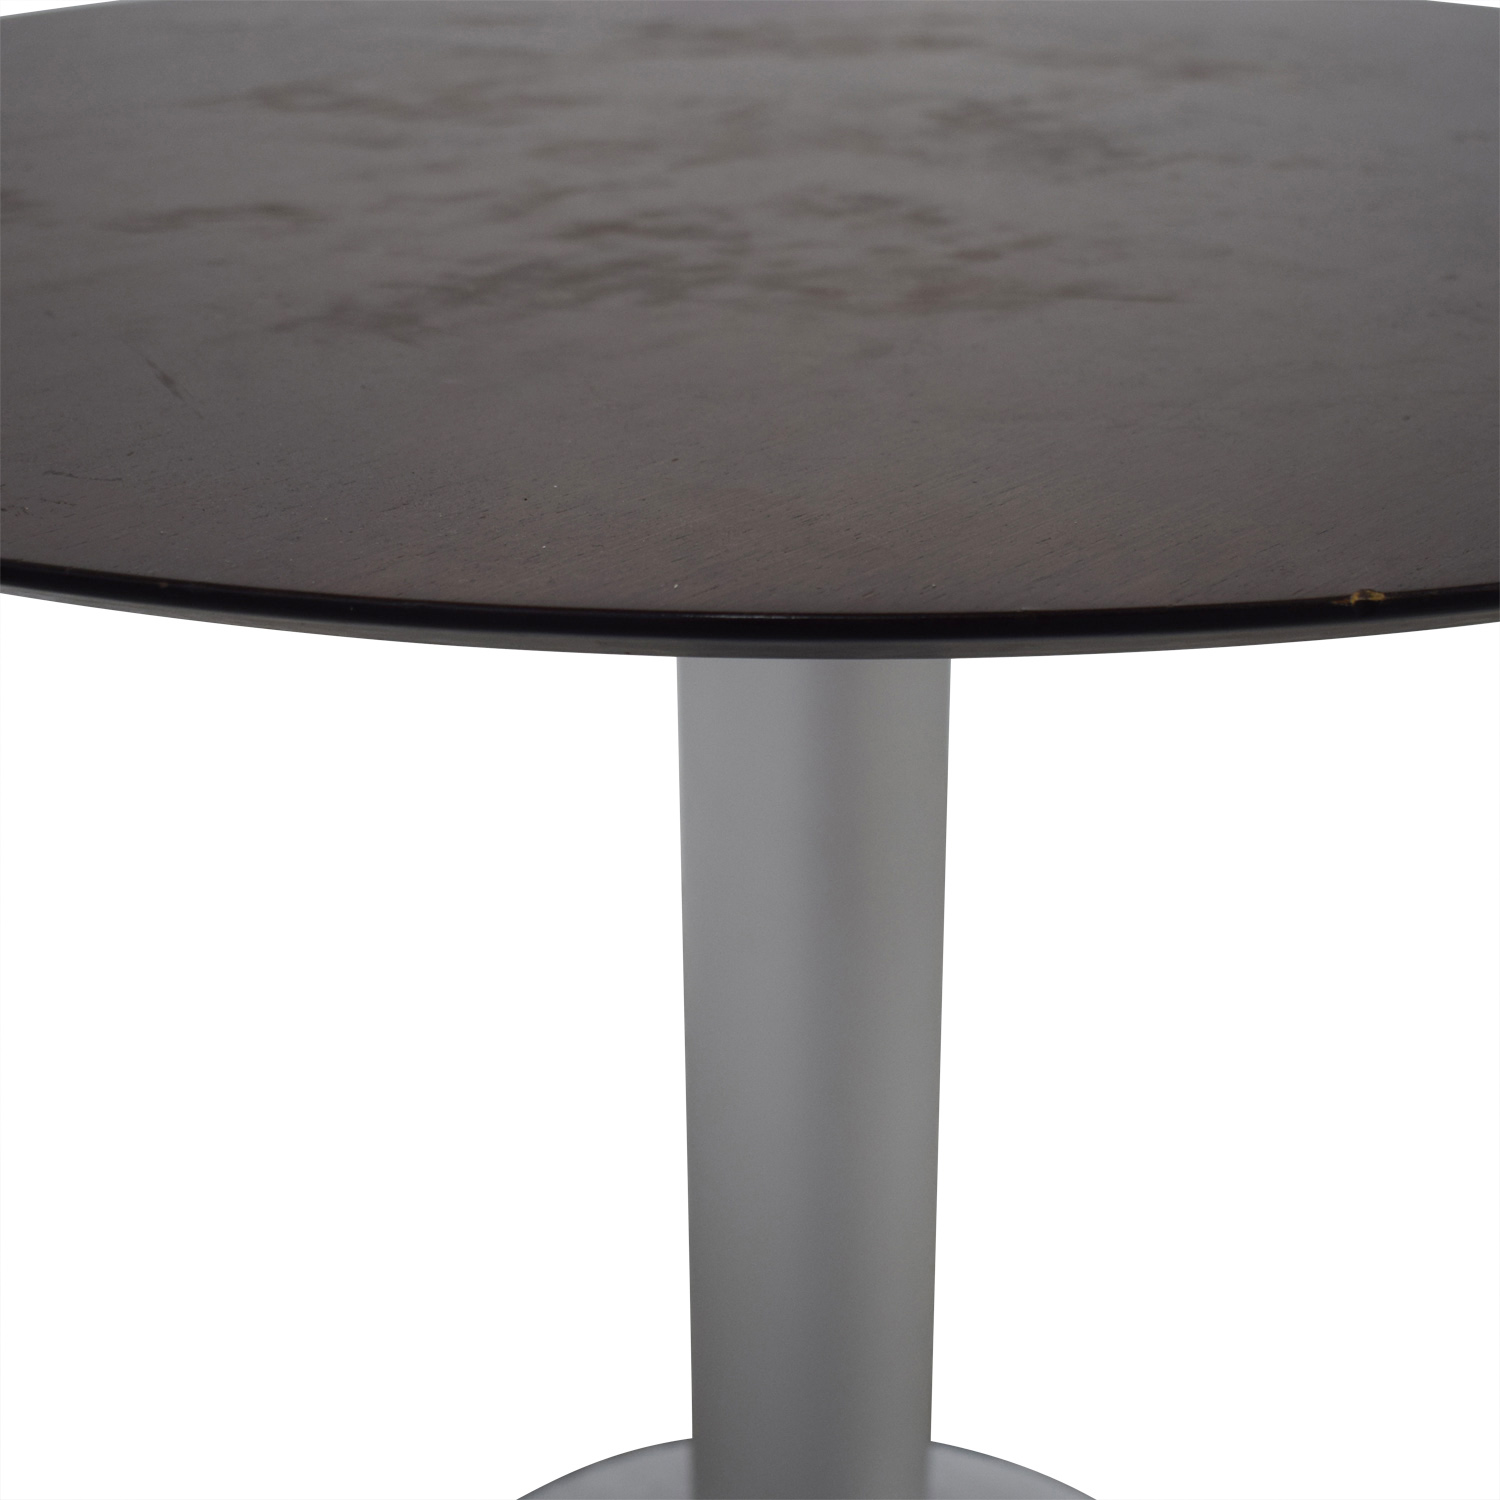 Stua Stua Zero Wood and Chrome Round Table price